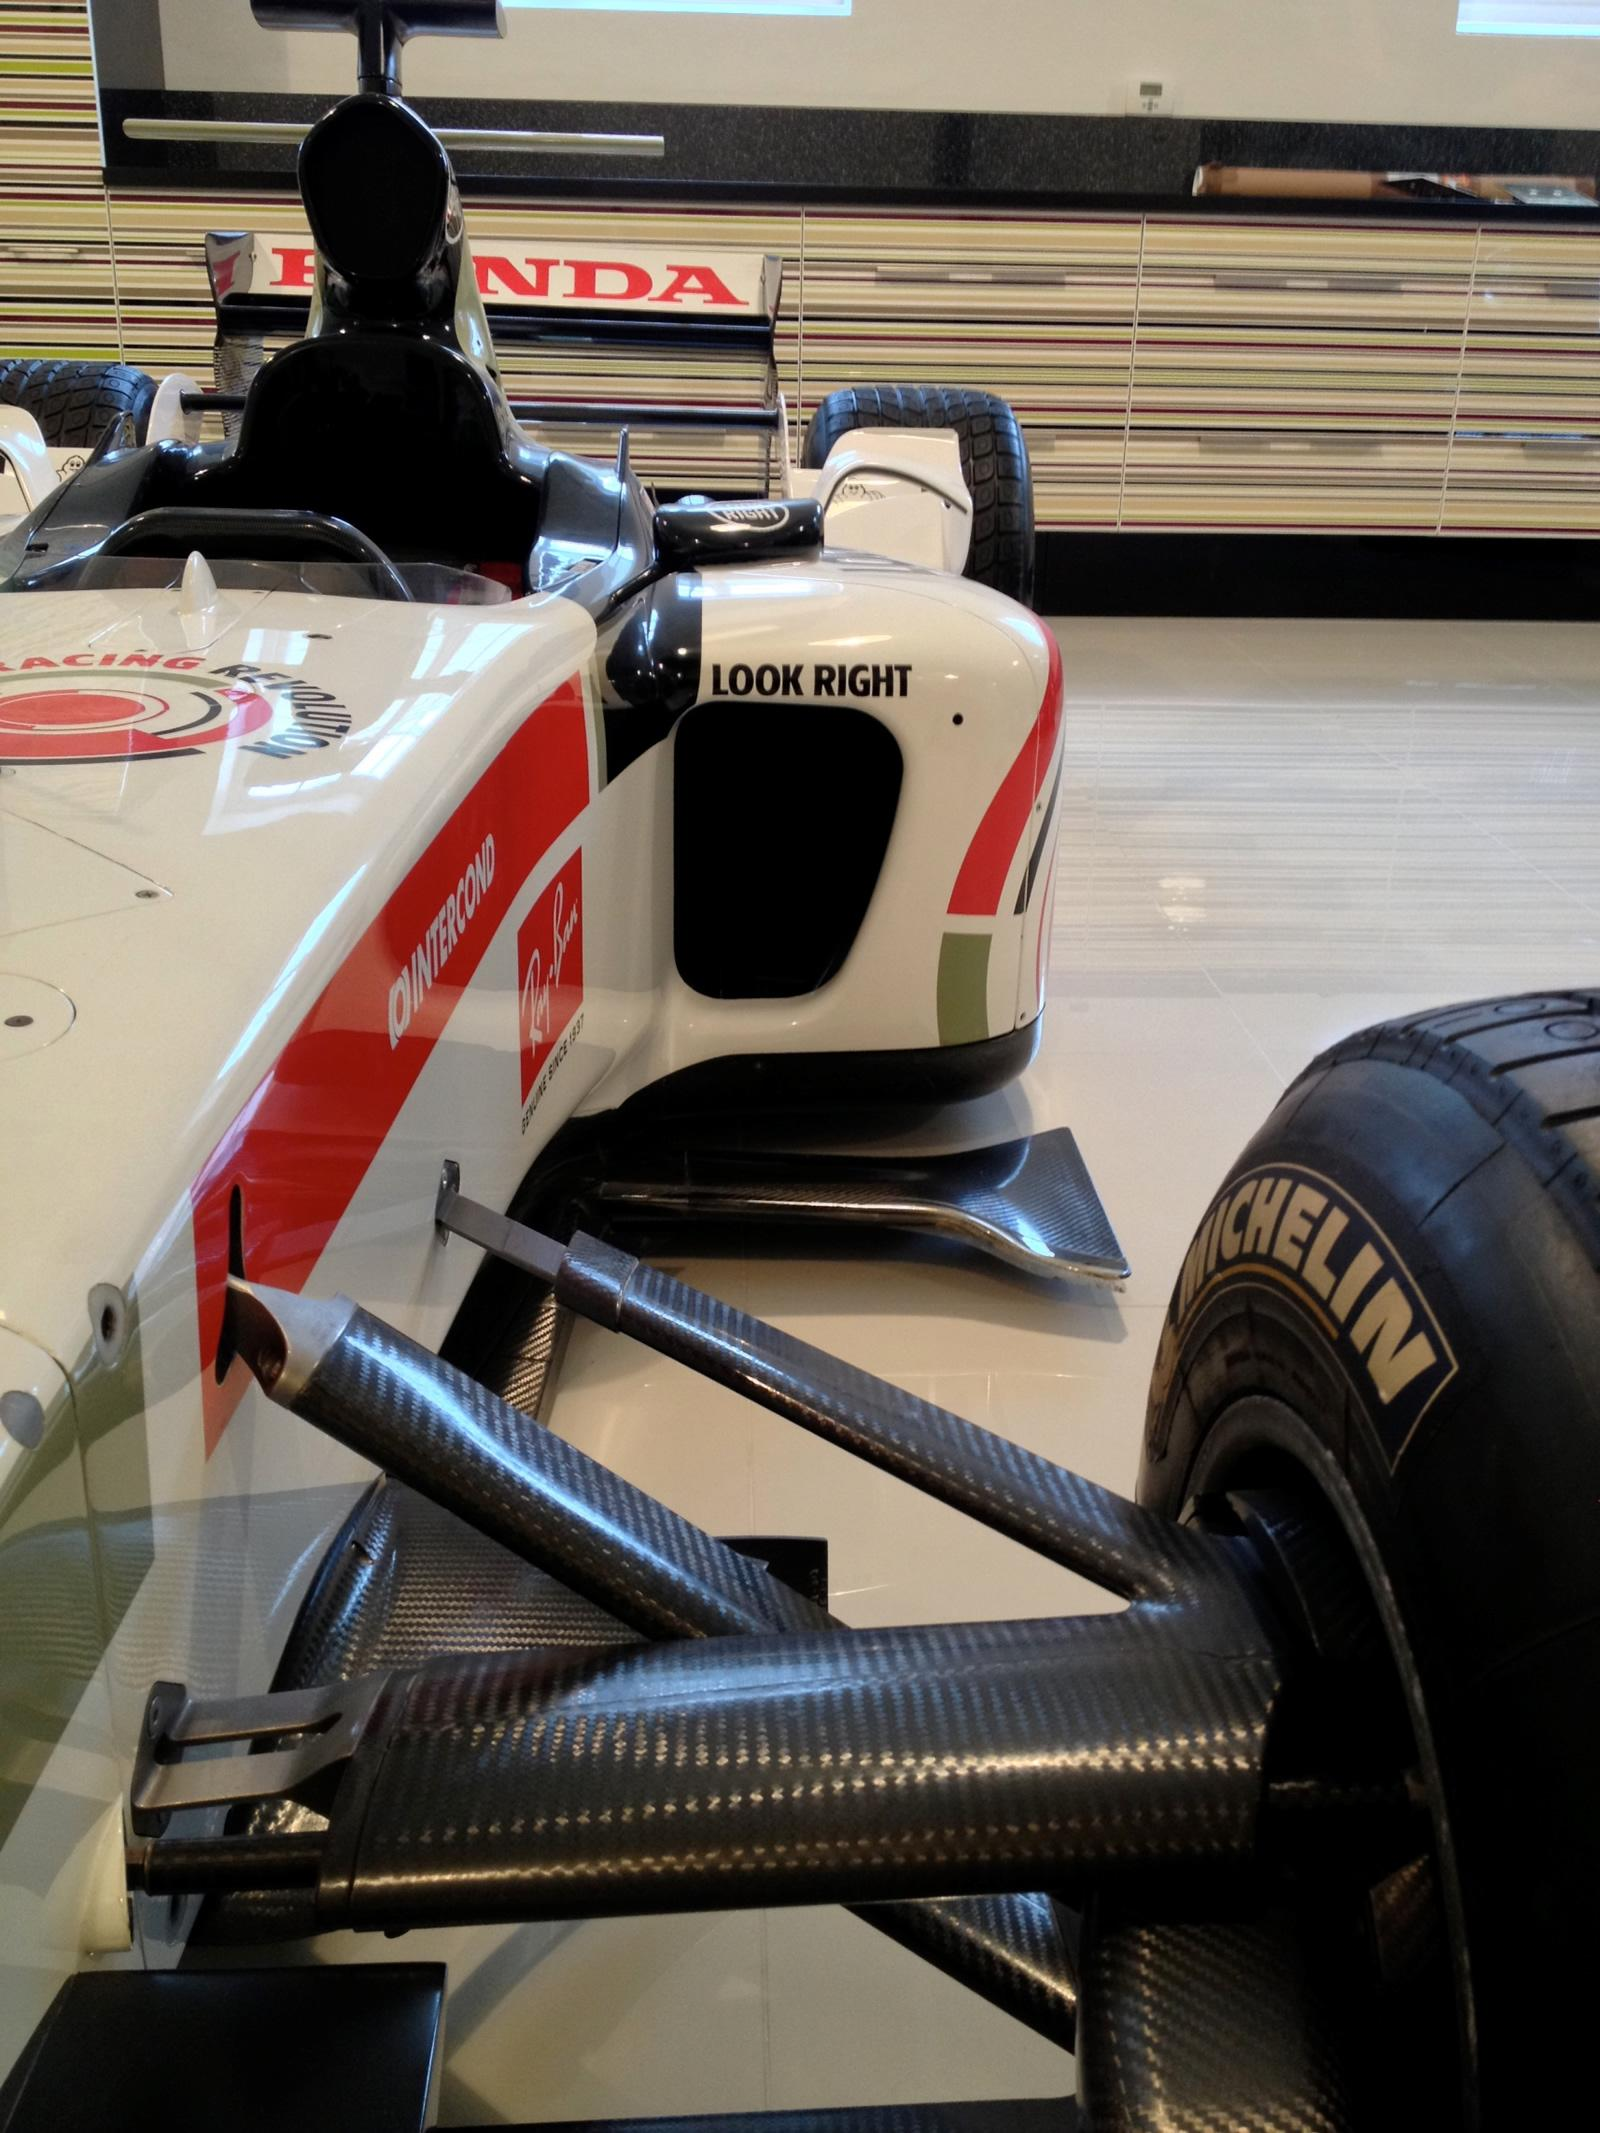 One Seater Car >> Jenson Button's BAR Honda 006 Formula 1 Car On Sale for £60,000 - autoevolution